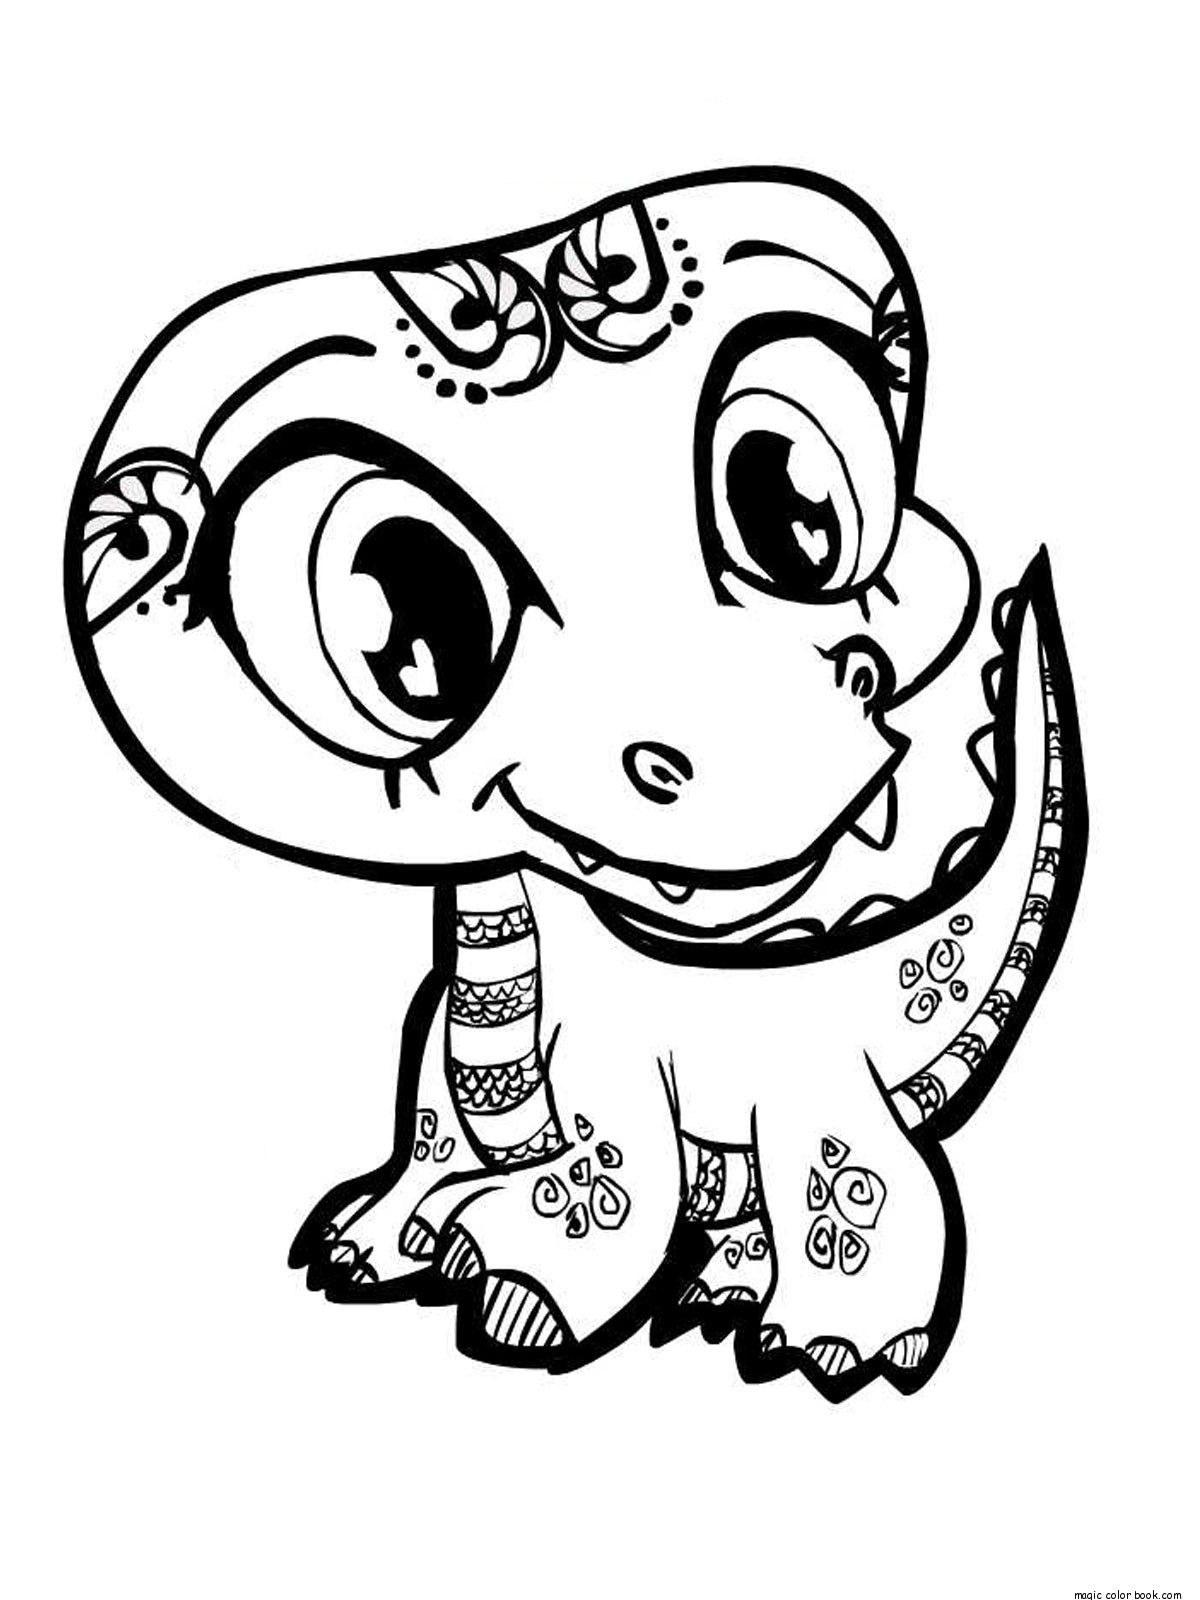 1200x1600 Cool Mclgebxi With Littlest Pet Shop Coloring Pages On With Hd